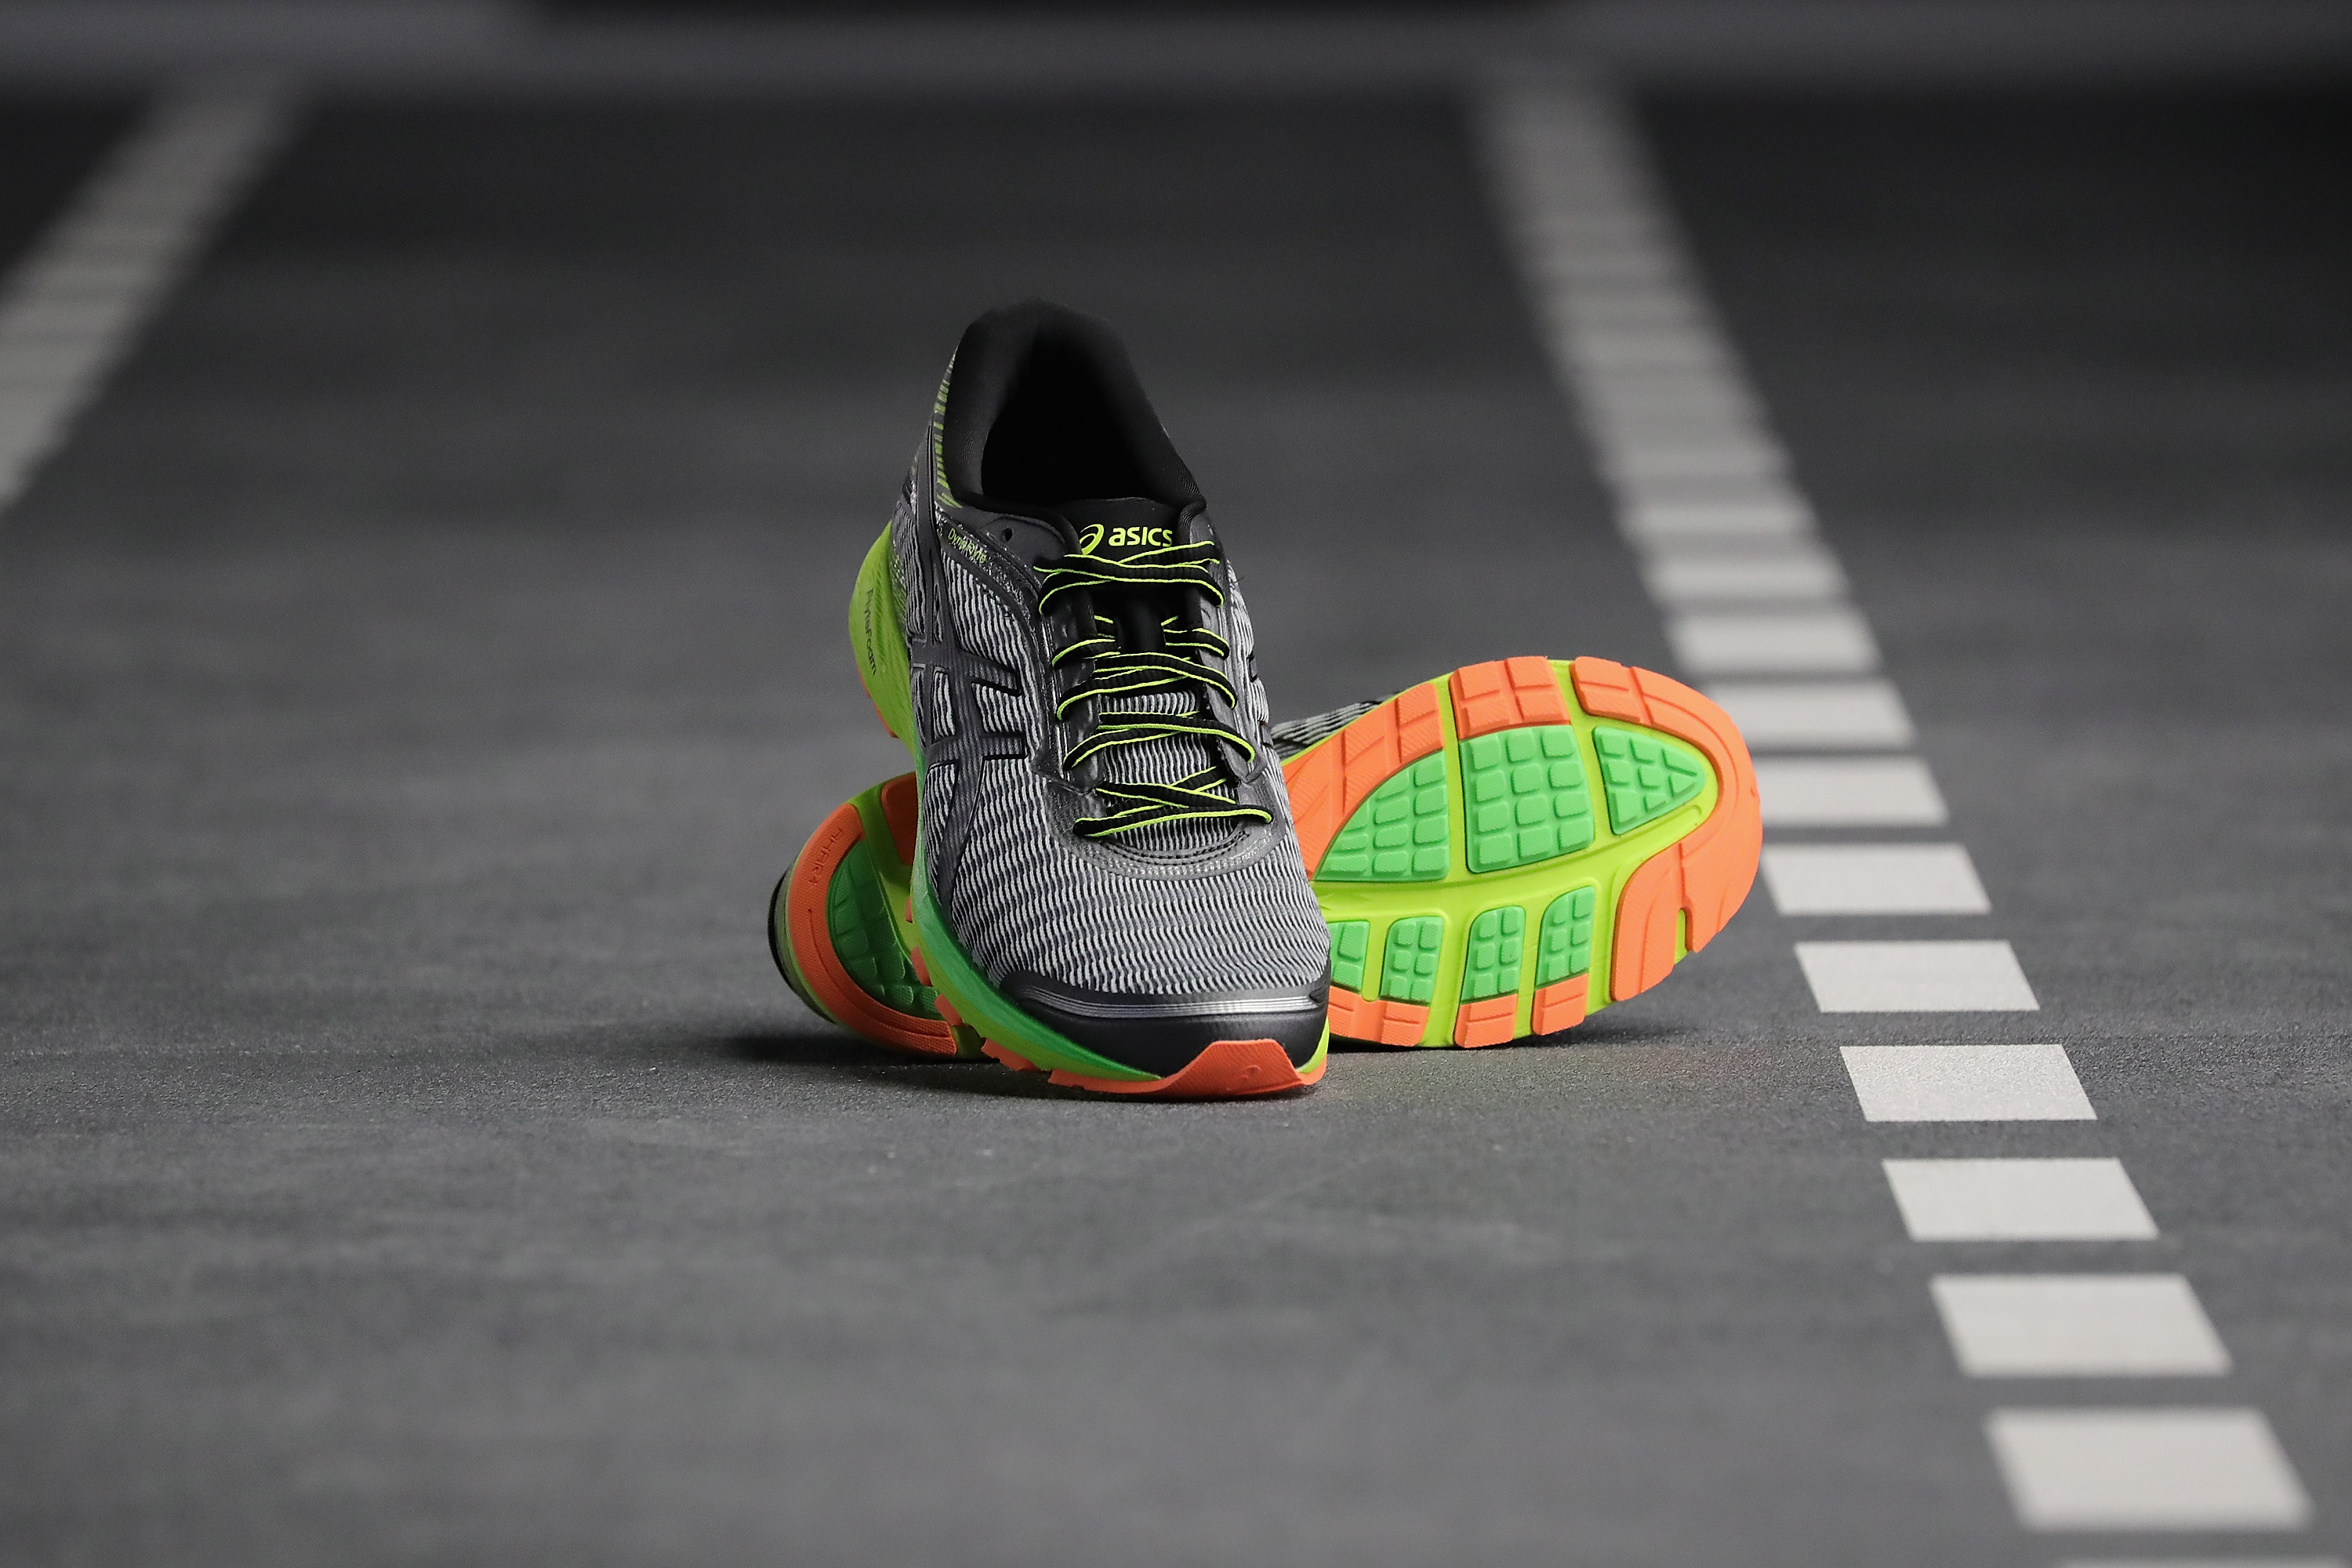 NEW YORK, NY - JUNE 14: The new DynaFlyte running shoe, ASICS lightest-ever cushioning shoe, as seen on the DynaFlyte Deck, a test track specially designed for ASICS DynaFlyte Global Launch Event on June 14, 2016 in New York City. (Photo by Neilson Barnard/Getty Images for ASICS)